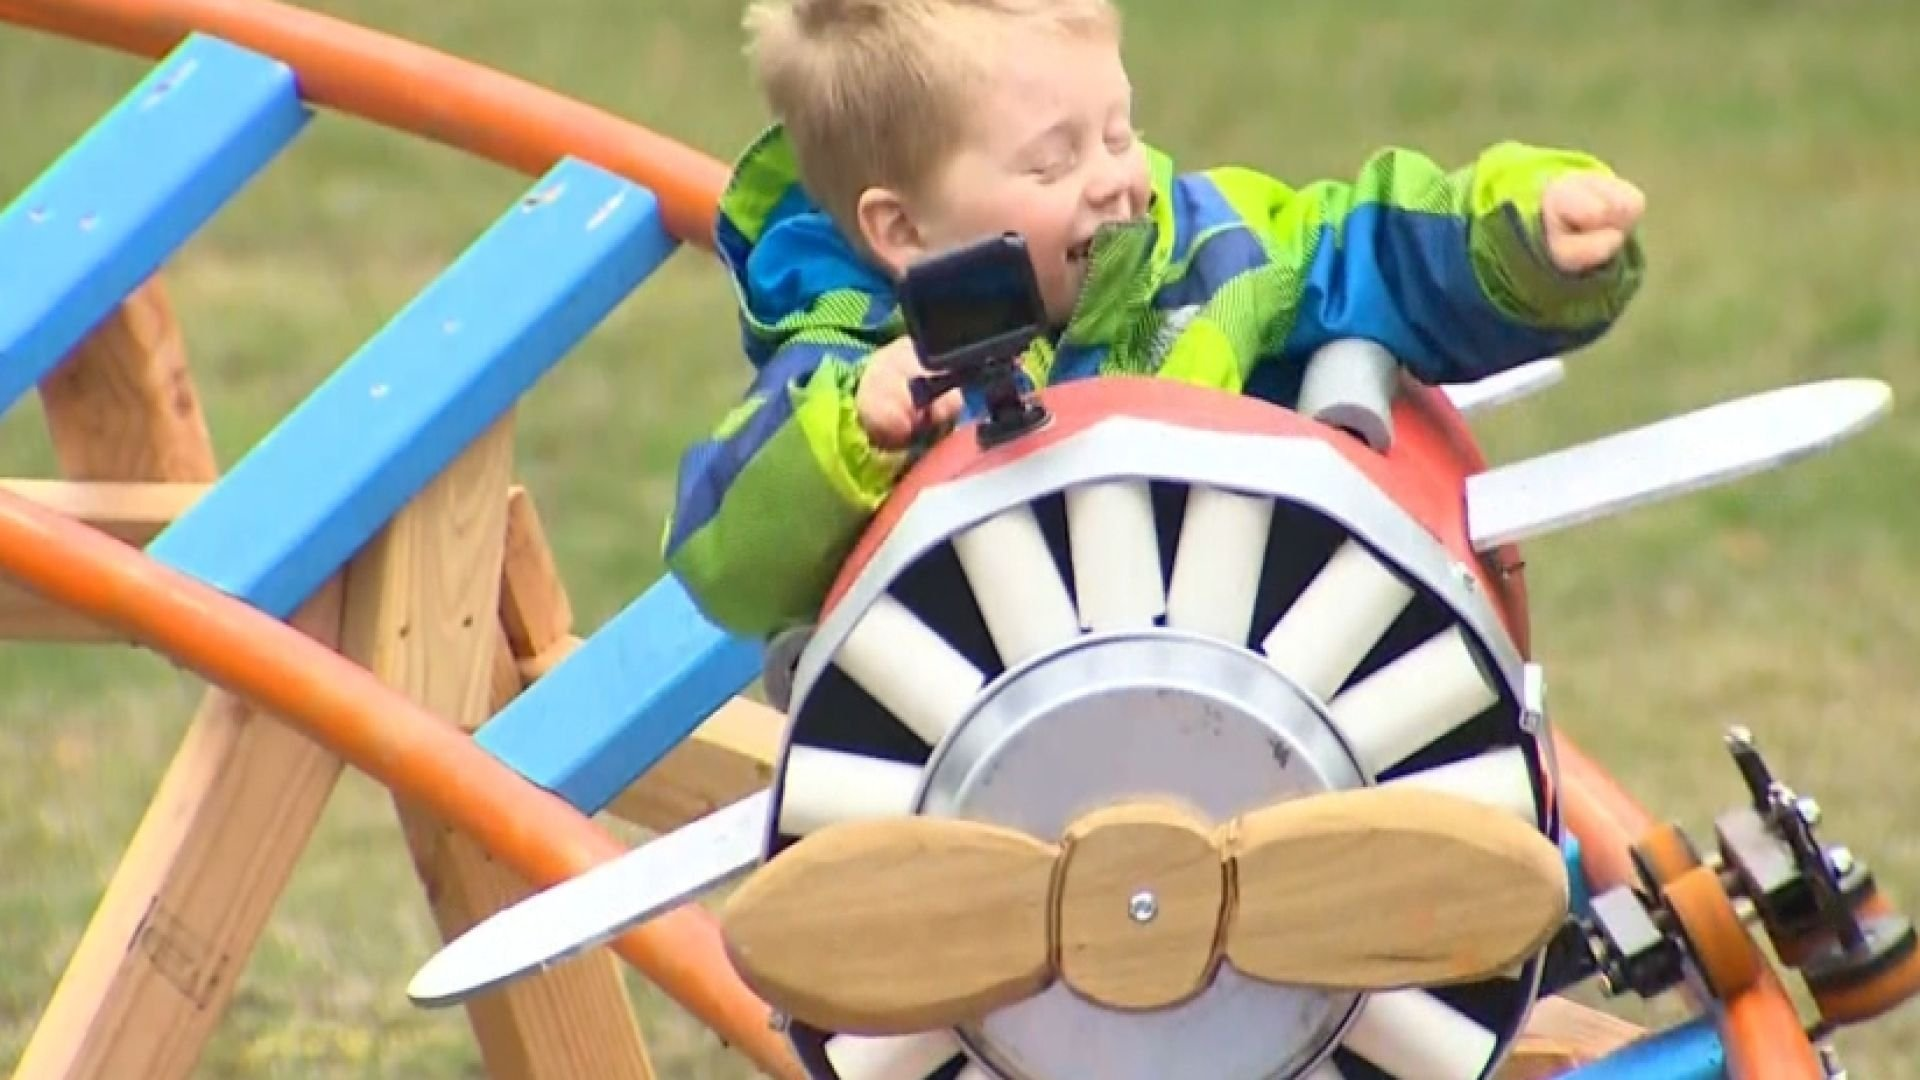 Navy pilot teams up with Boeing engineer to build and design an inspiring backyard roller coaster for his 3-year-old son. (KING)